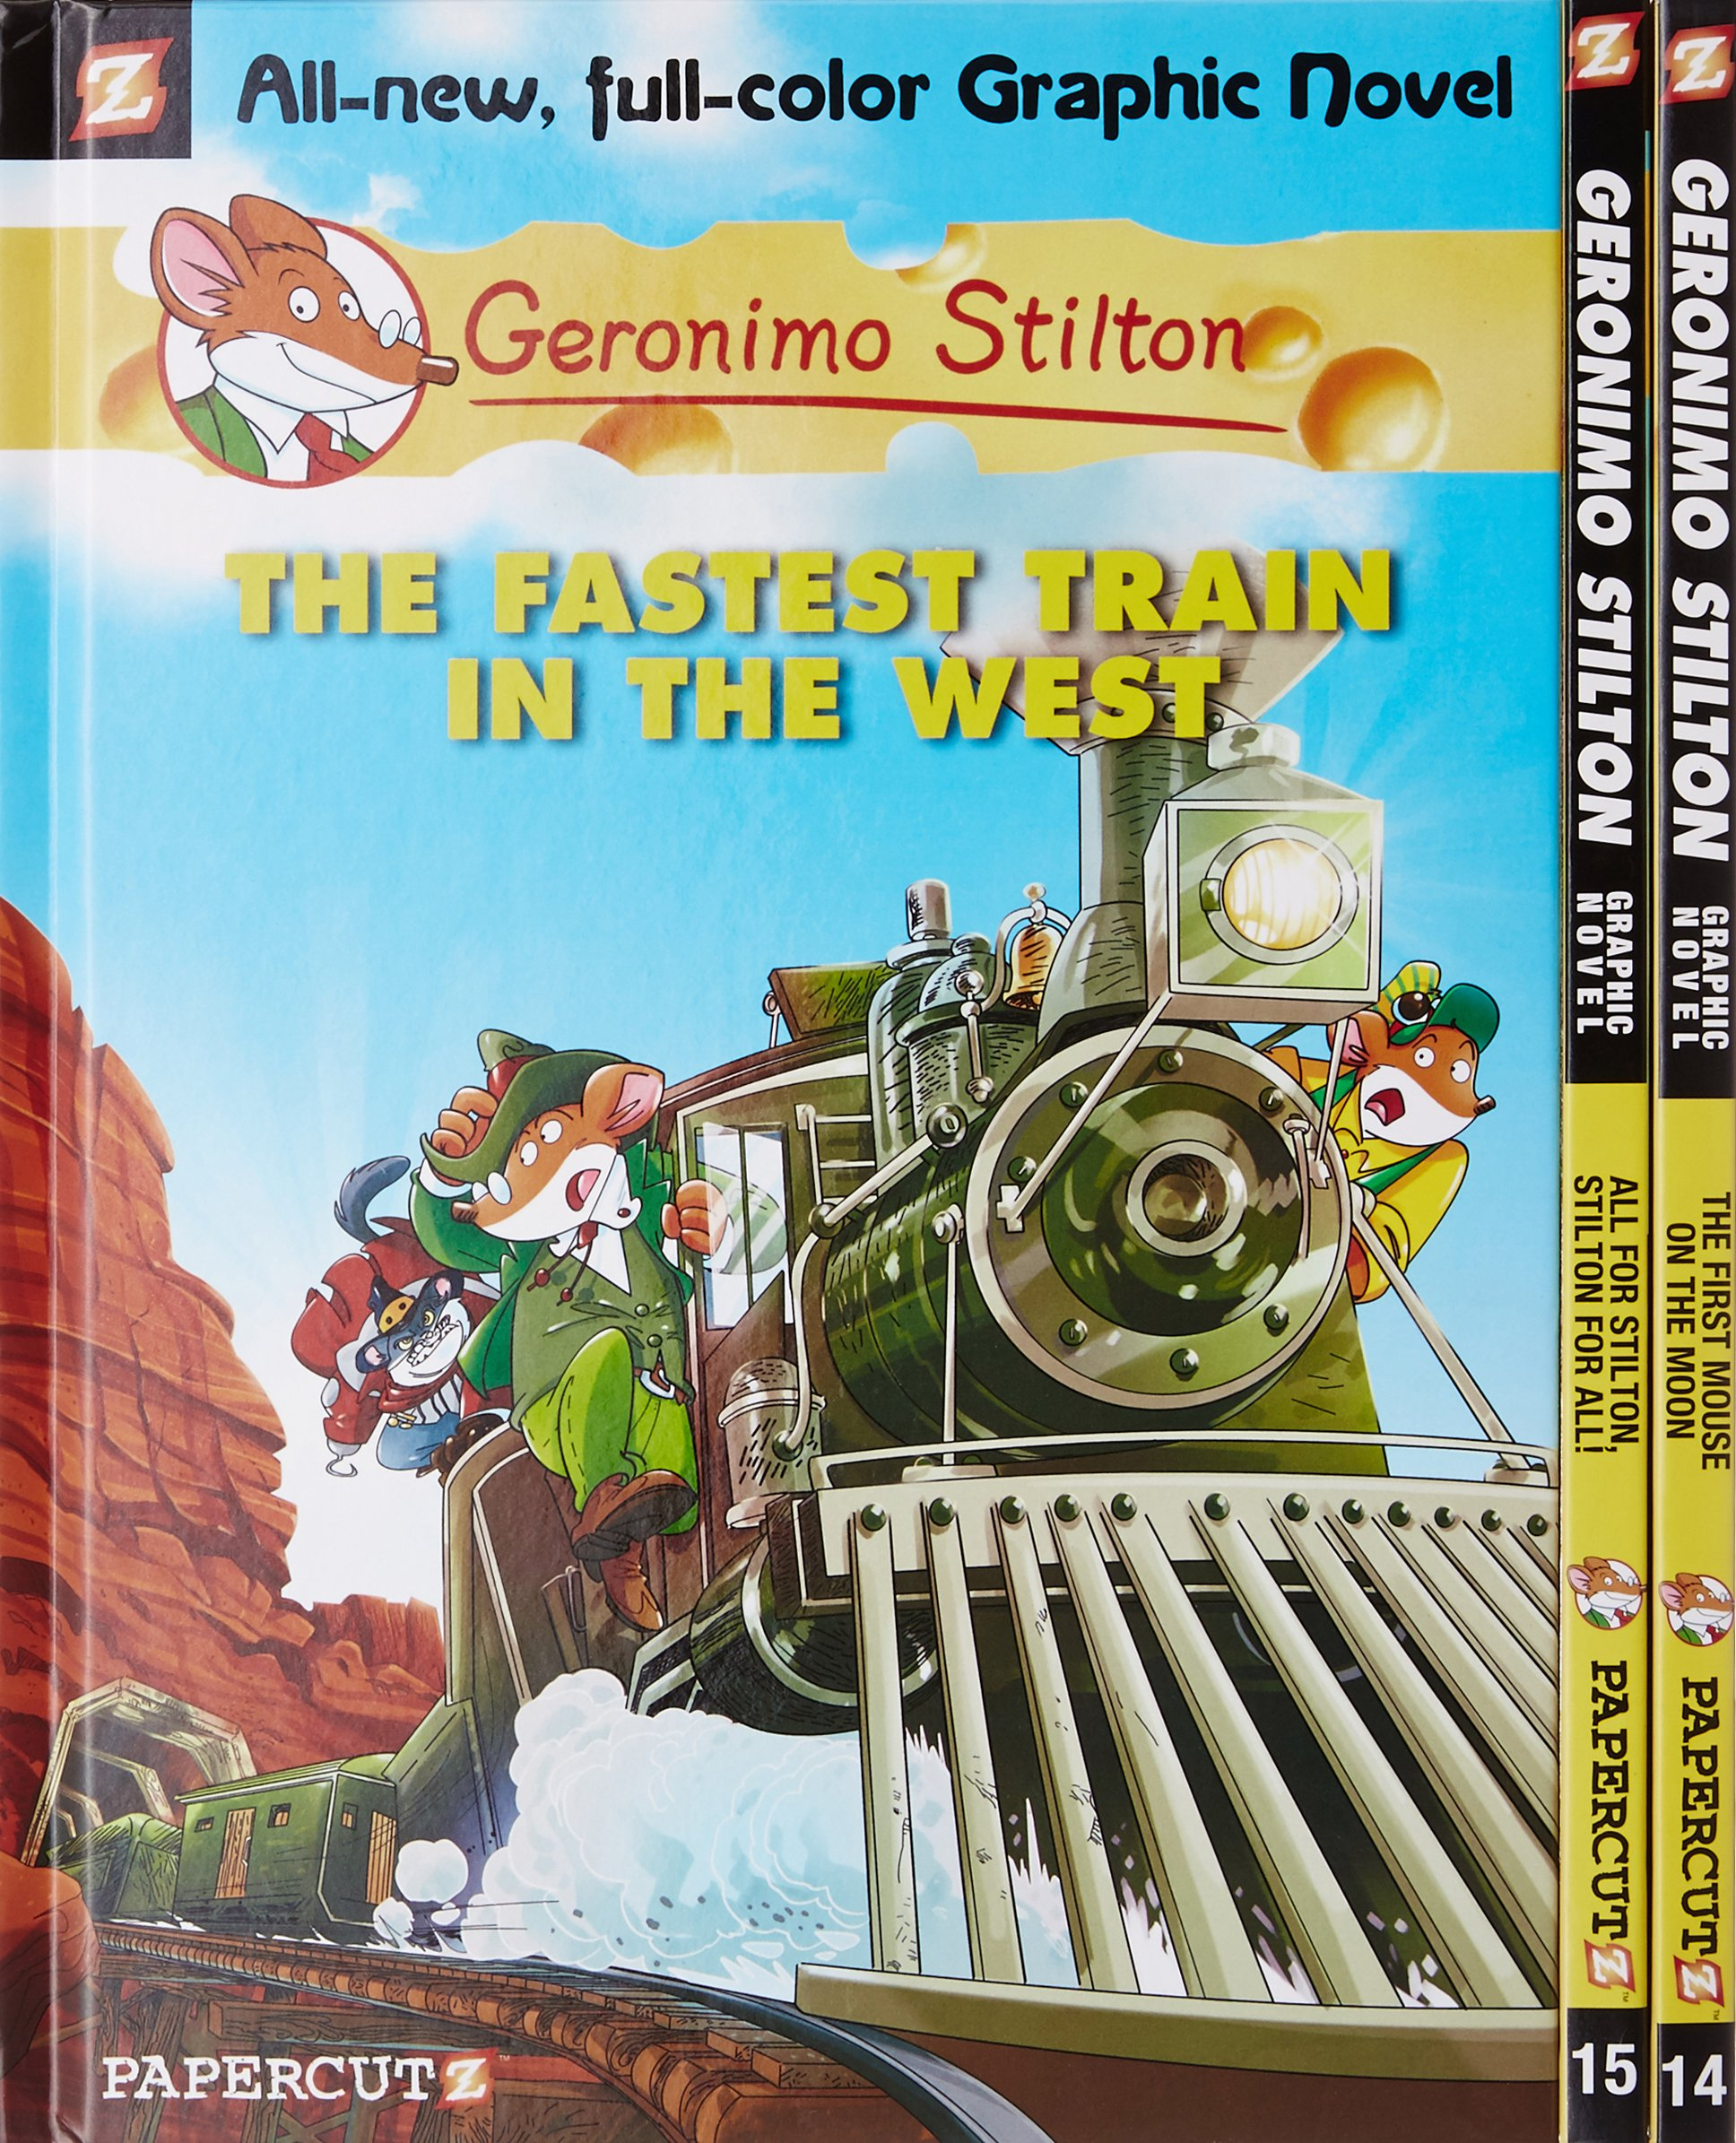 Geronimo Stilton Graphic Novels #13: The Fastest Train In the West